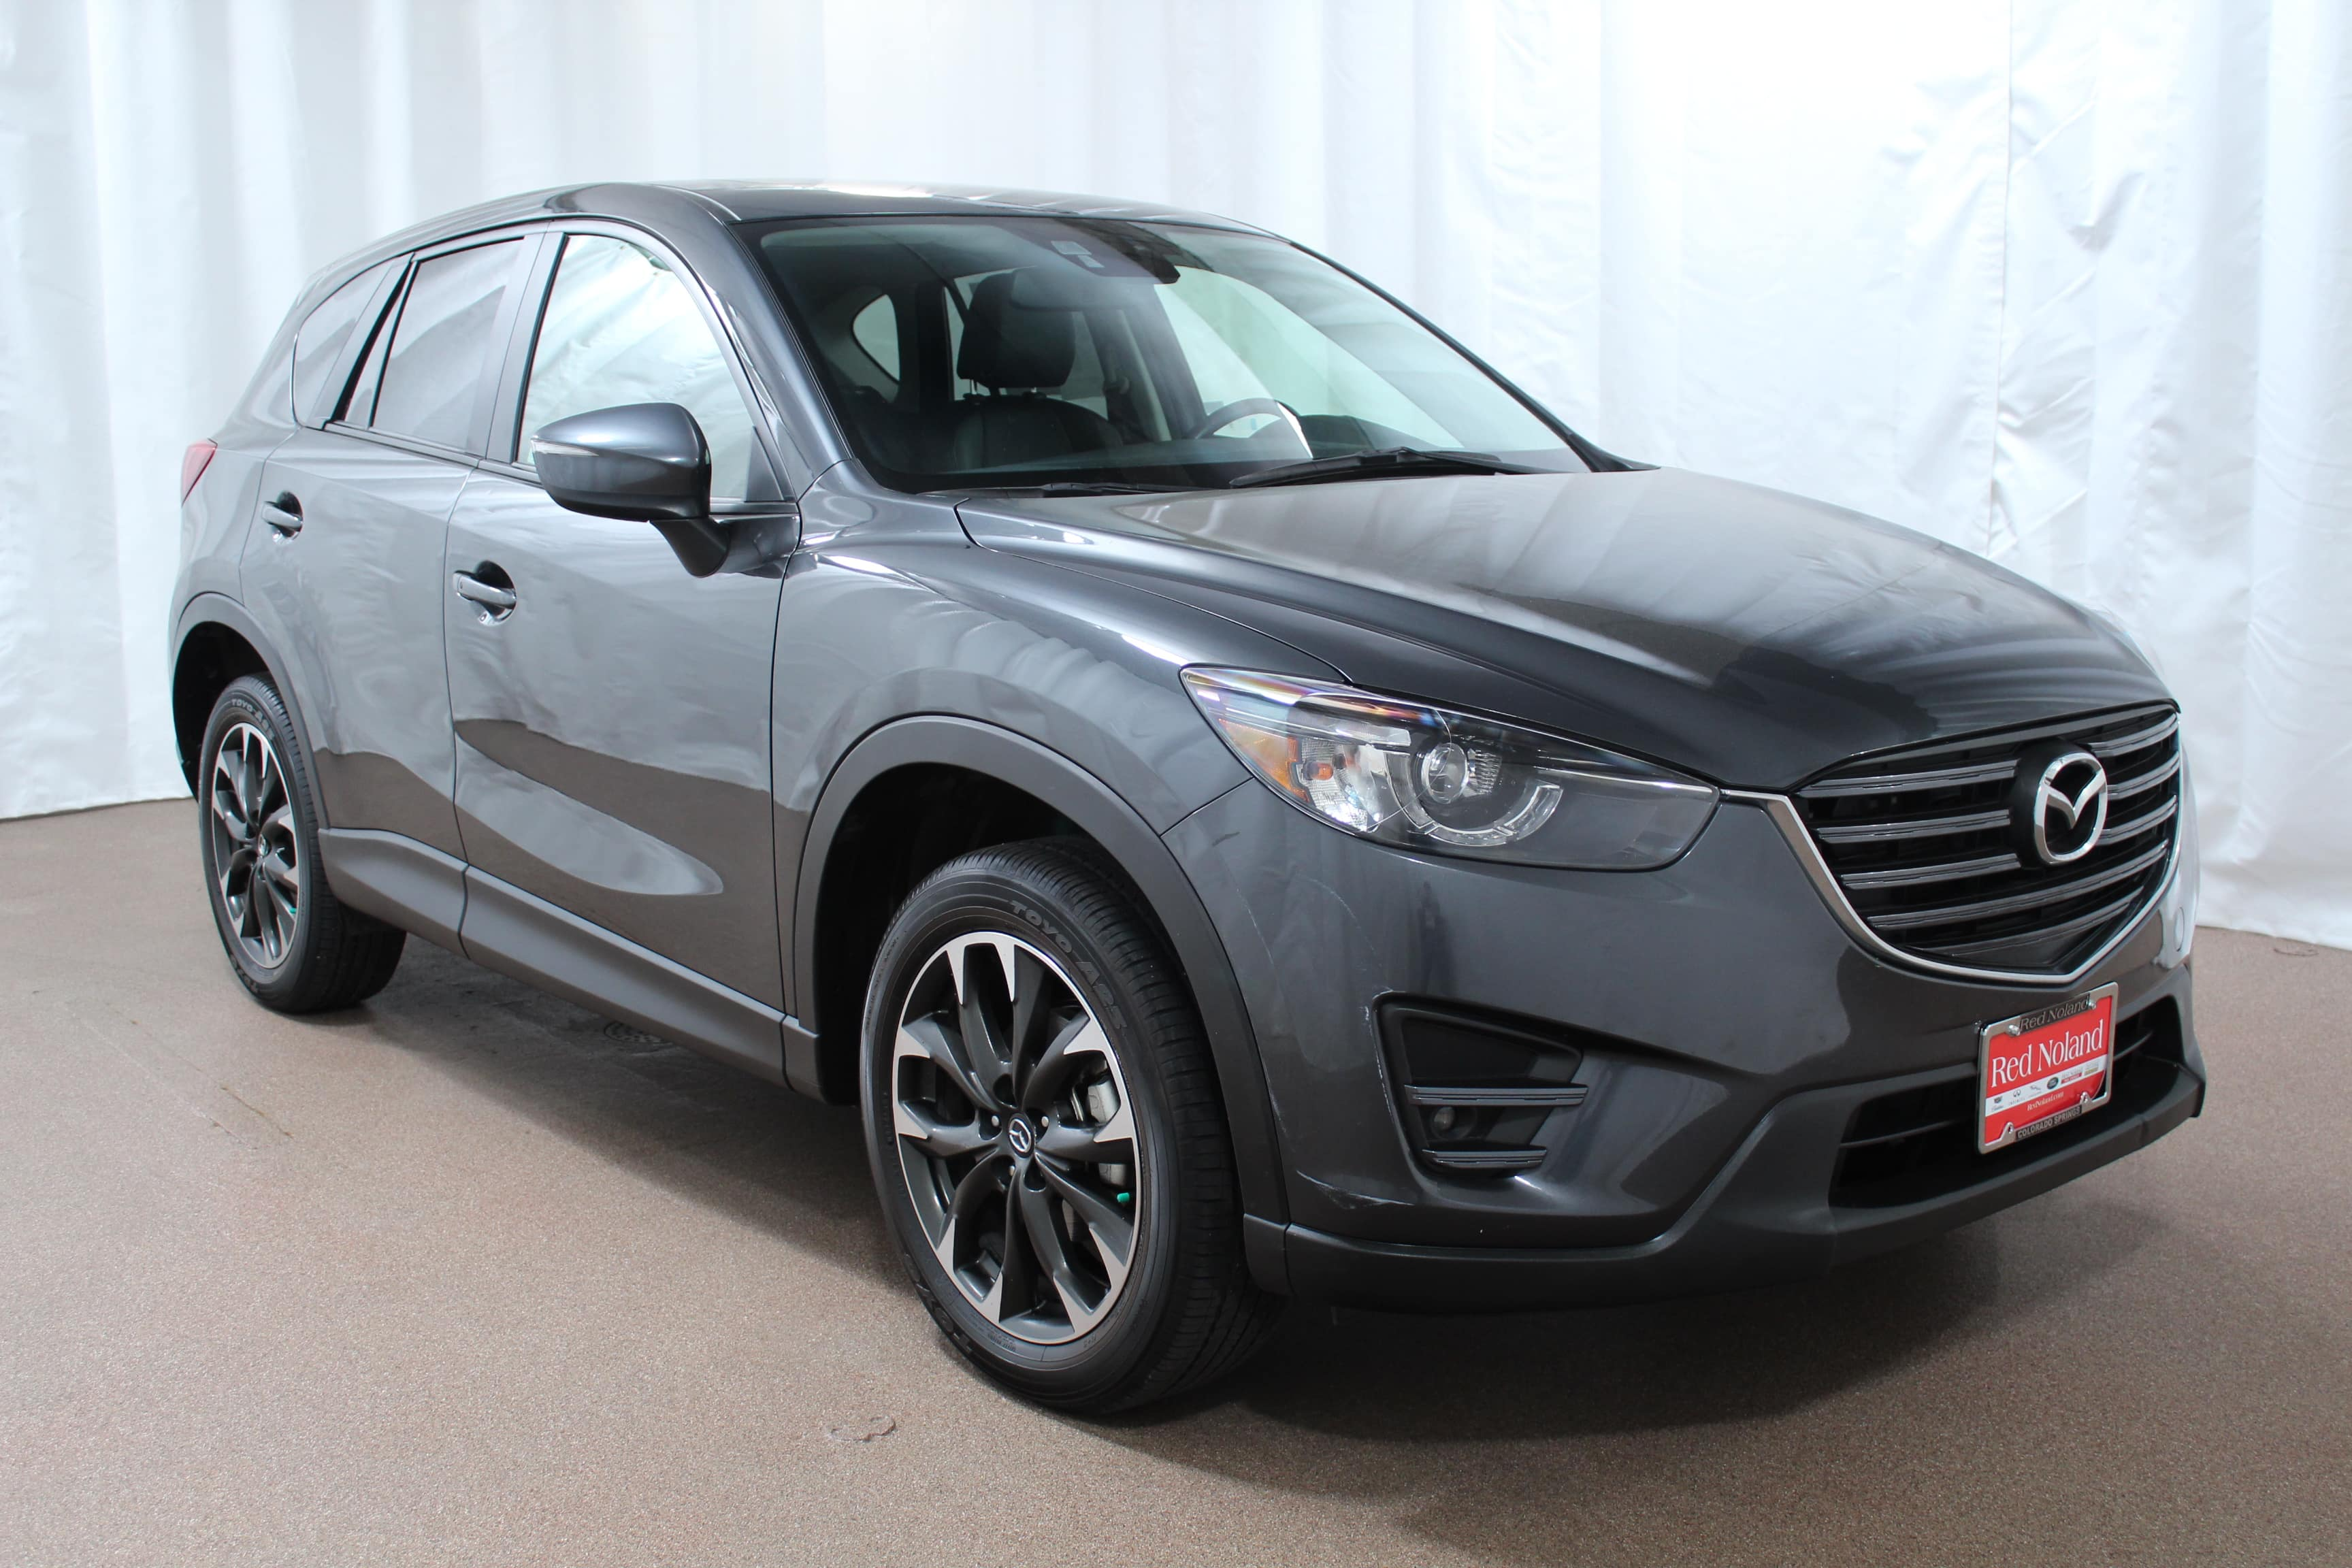 Used 2016 Mazda CX 5 Grand Touring at Land Rover Colorado Springs